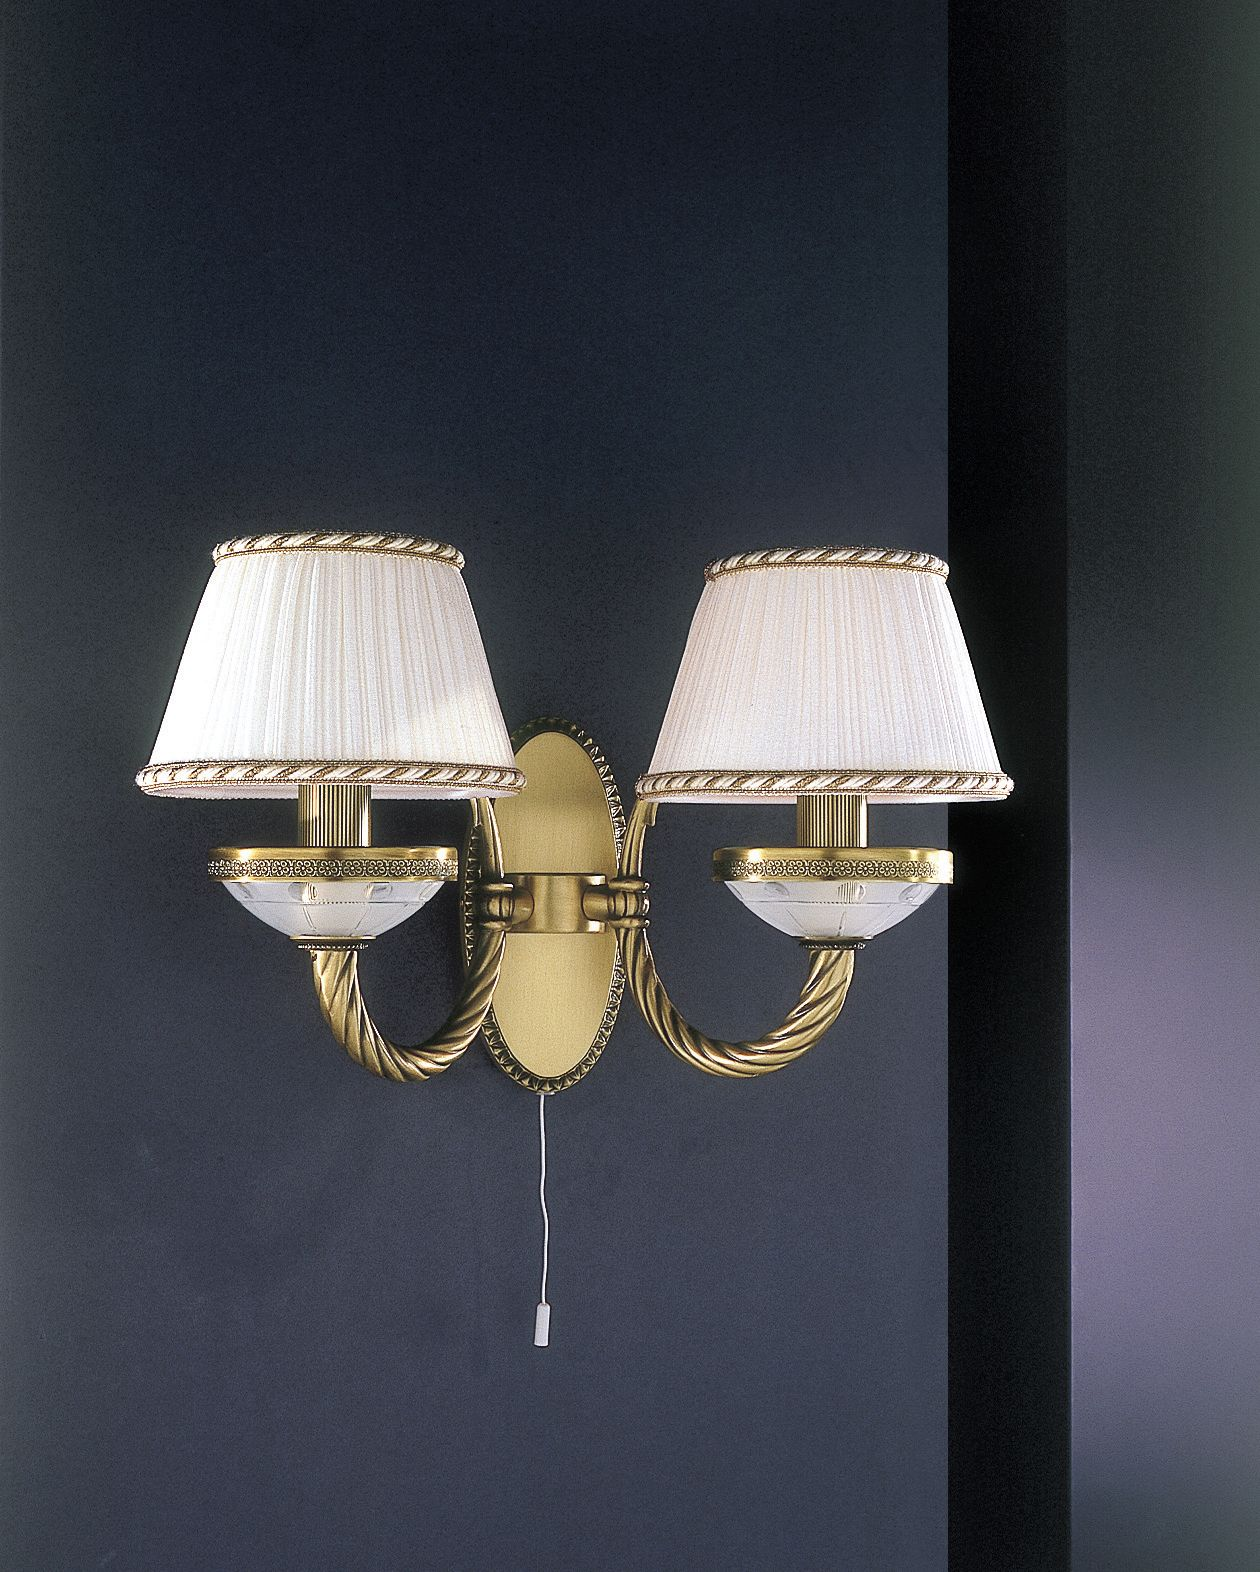 2 light brass and frosted glass wall sconce with lamp shade